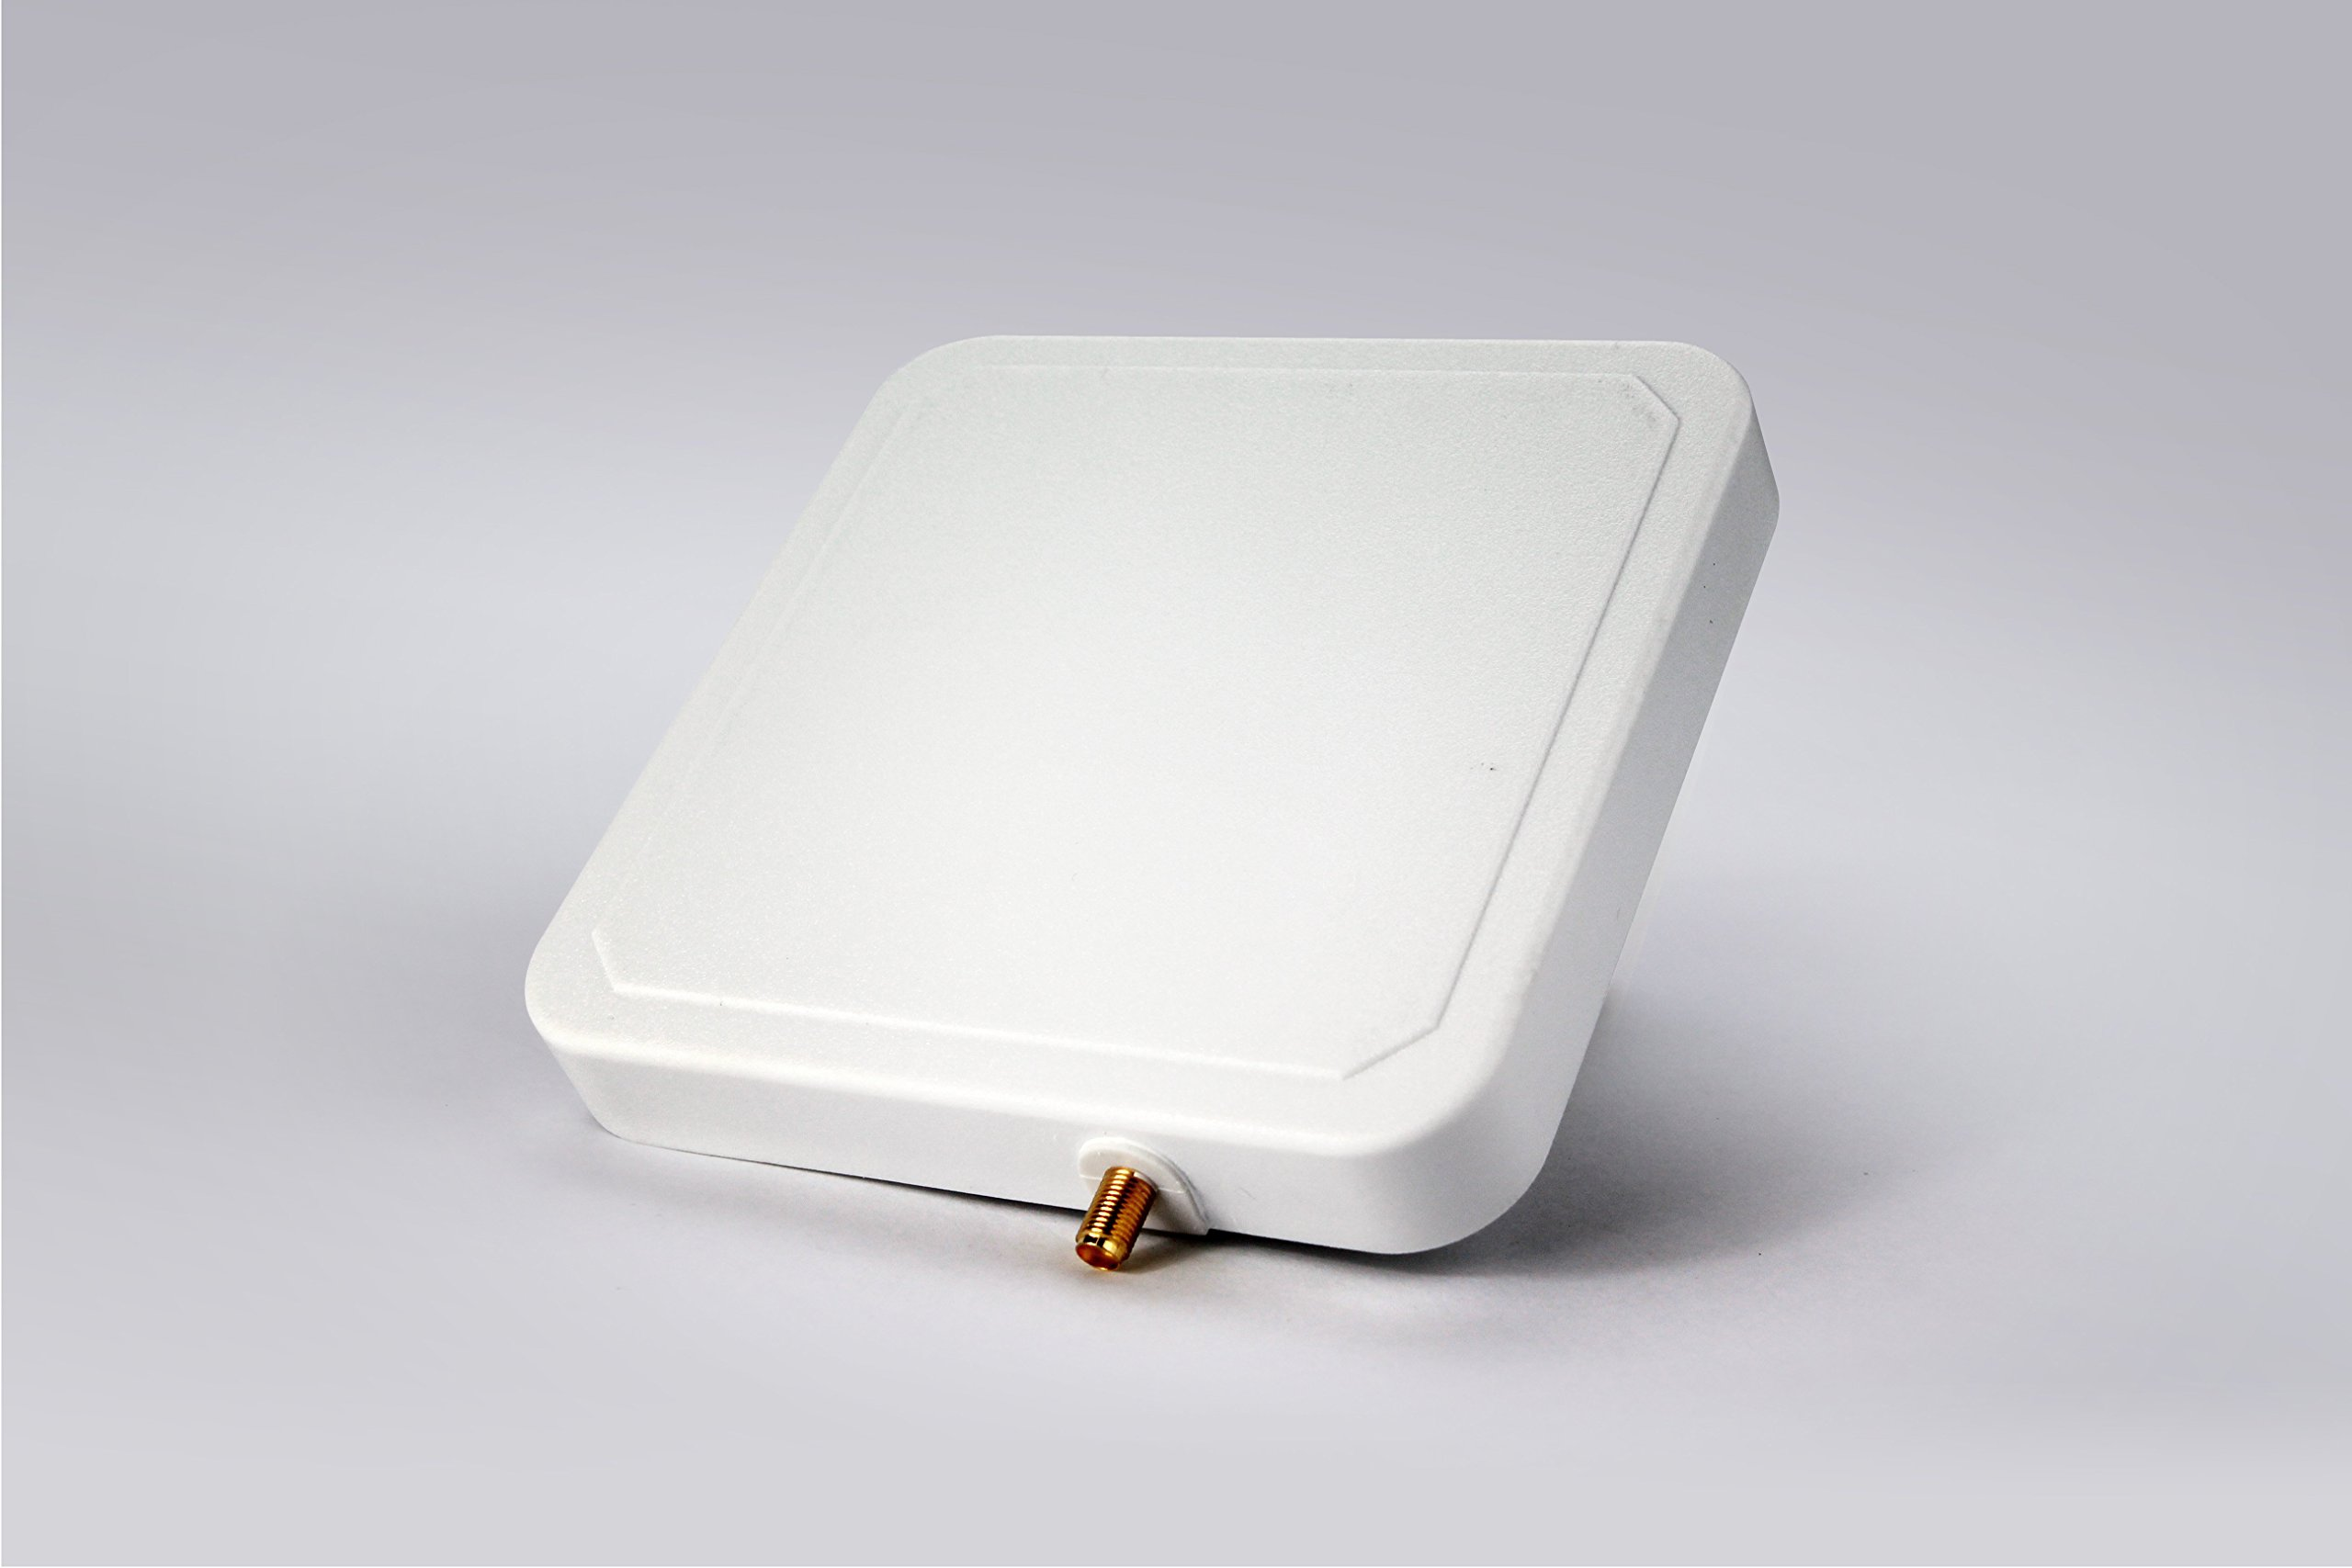 UHF RFID Reader Antenna, Bestga BSRA-02SR IP65 902-928MHz 6dBic Circular Rfid Antenna with SMA-50KFD Connector Suitable for Entrance Guard, Warehouse and Retail Item Management and etc by Bestga